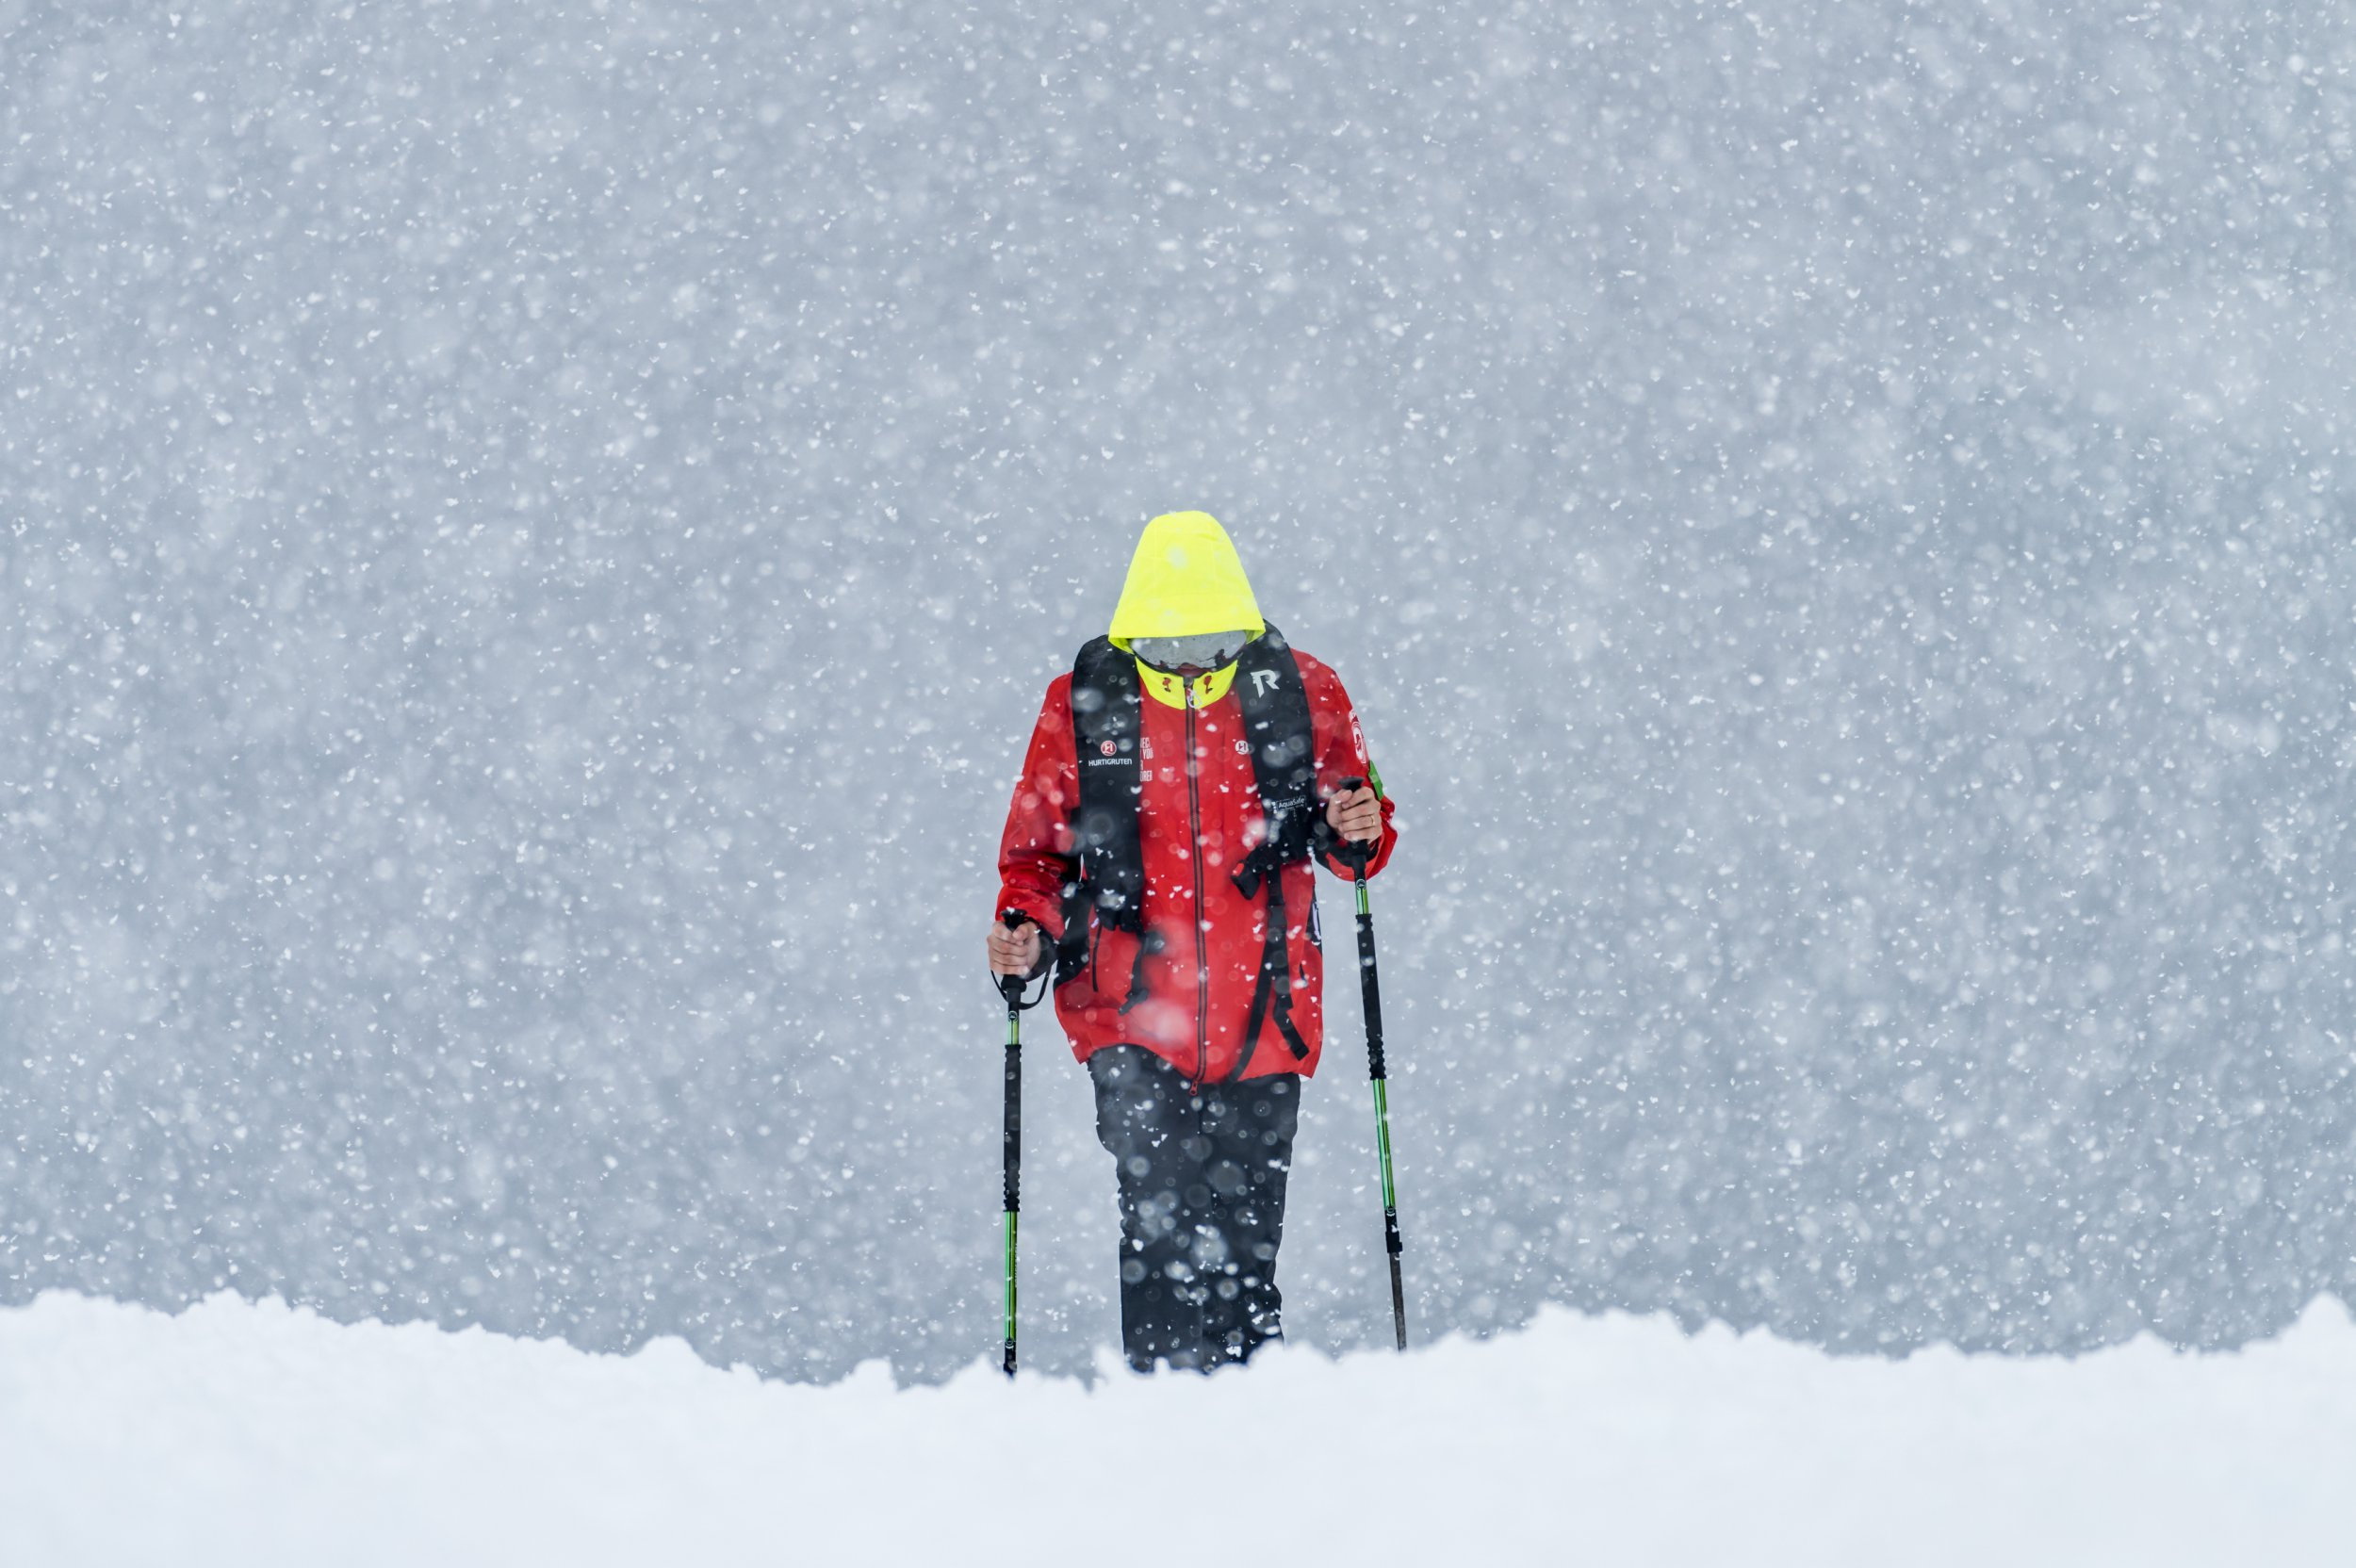 Weather in Antarctica is changing and it's snowing much more